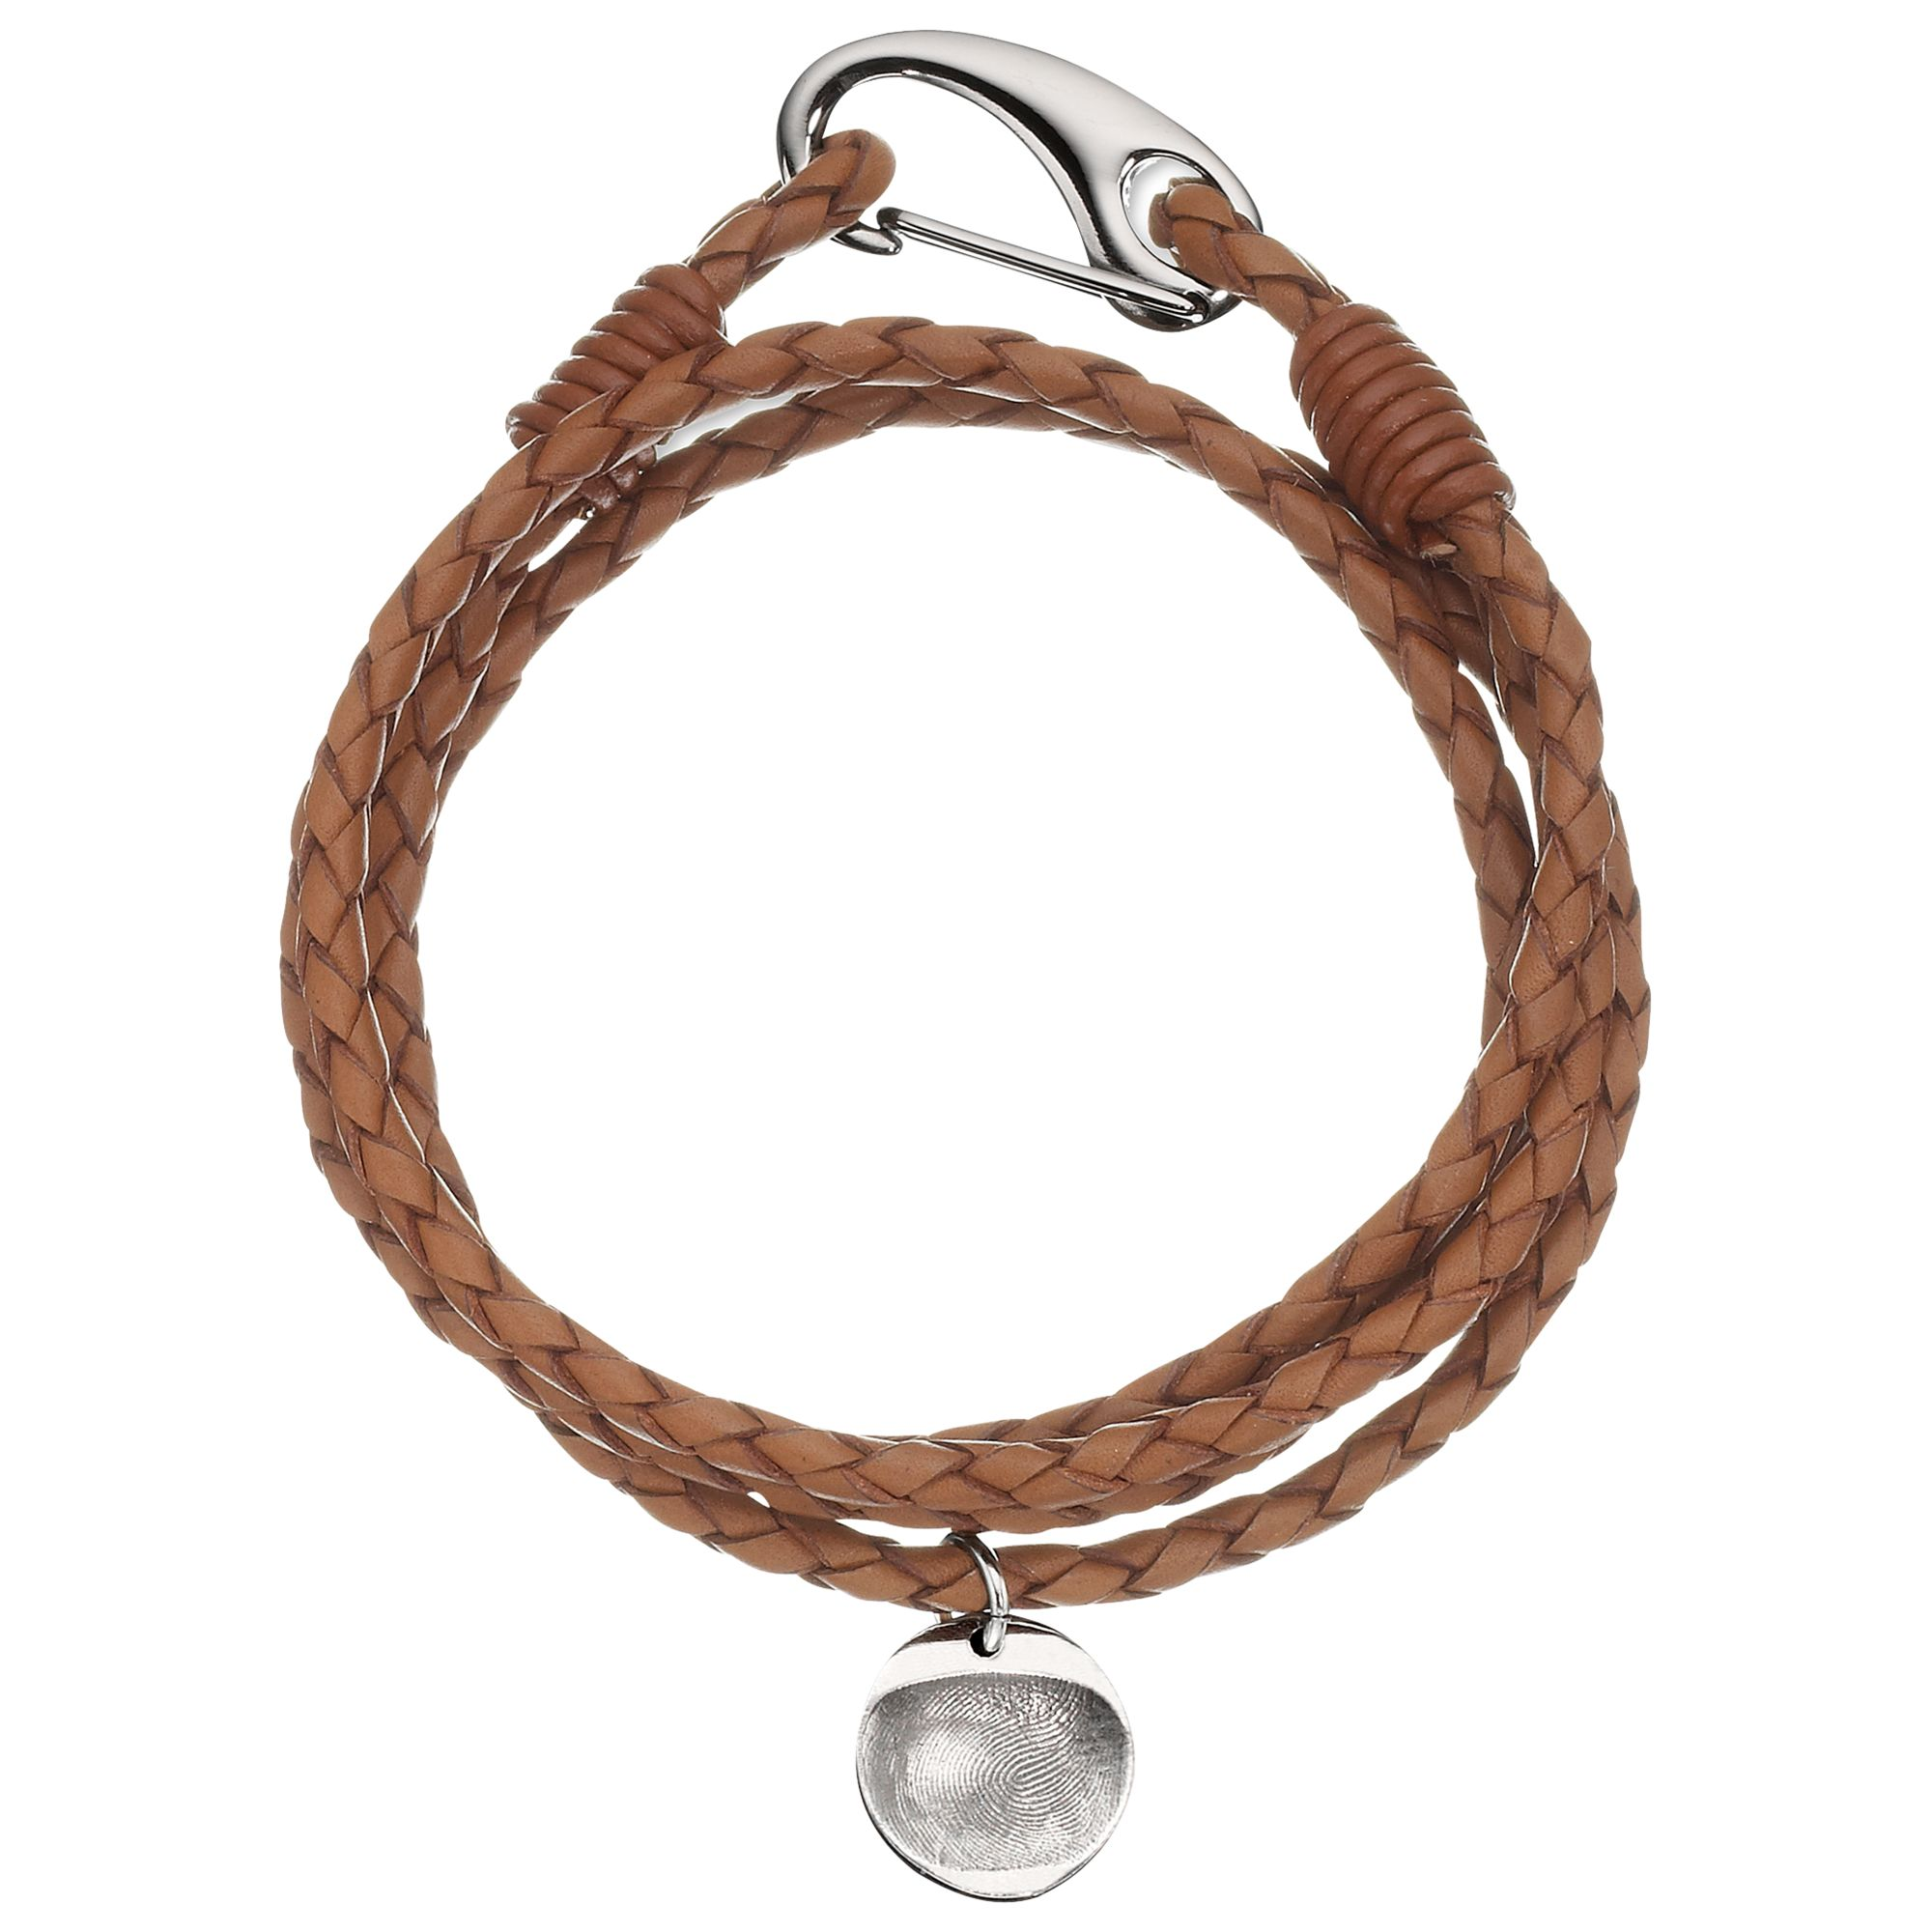 Under The Rose Under the Rose Personalised Men's Leather Bracelet, 1 Charm